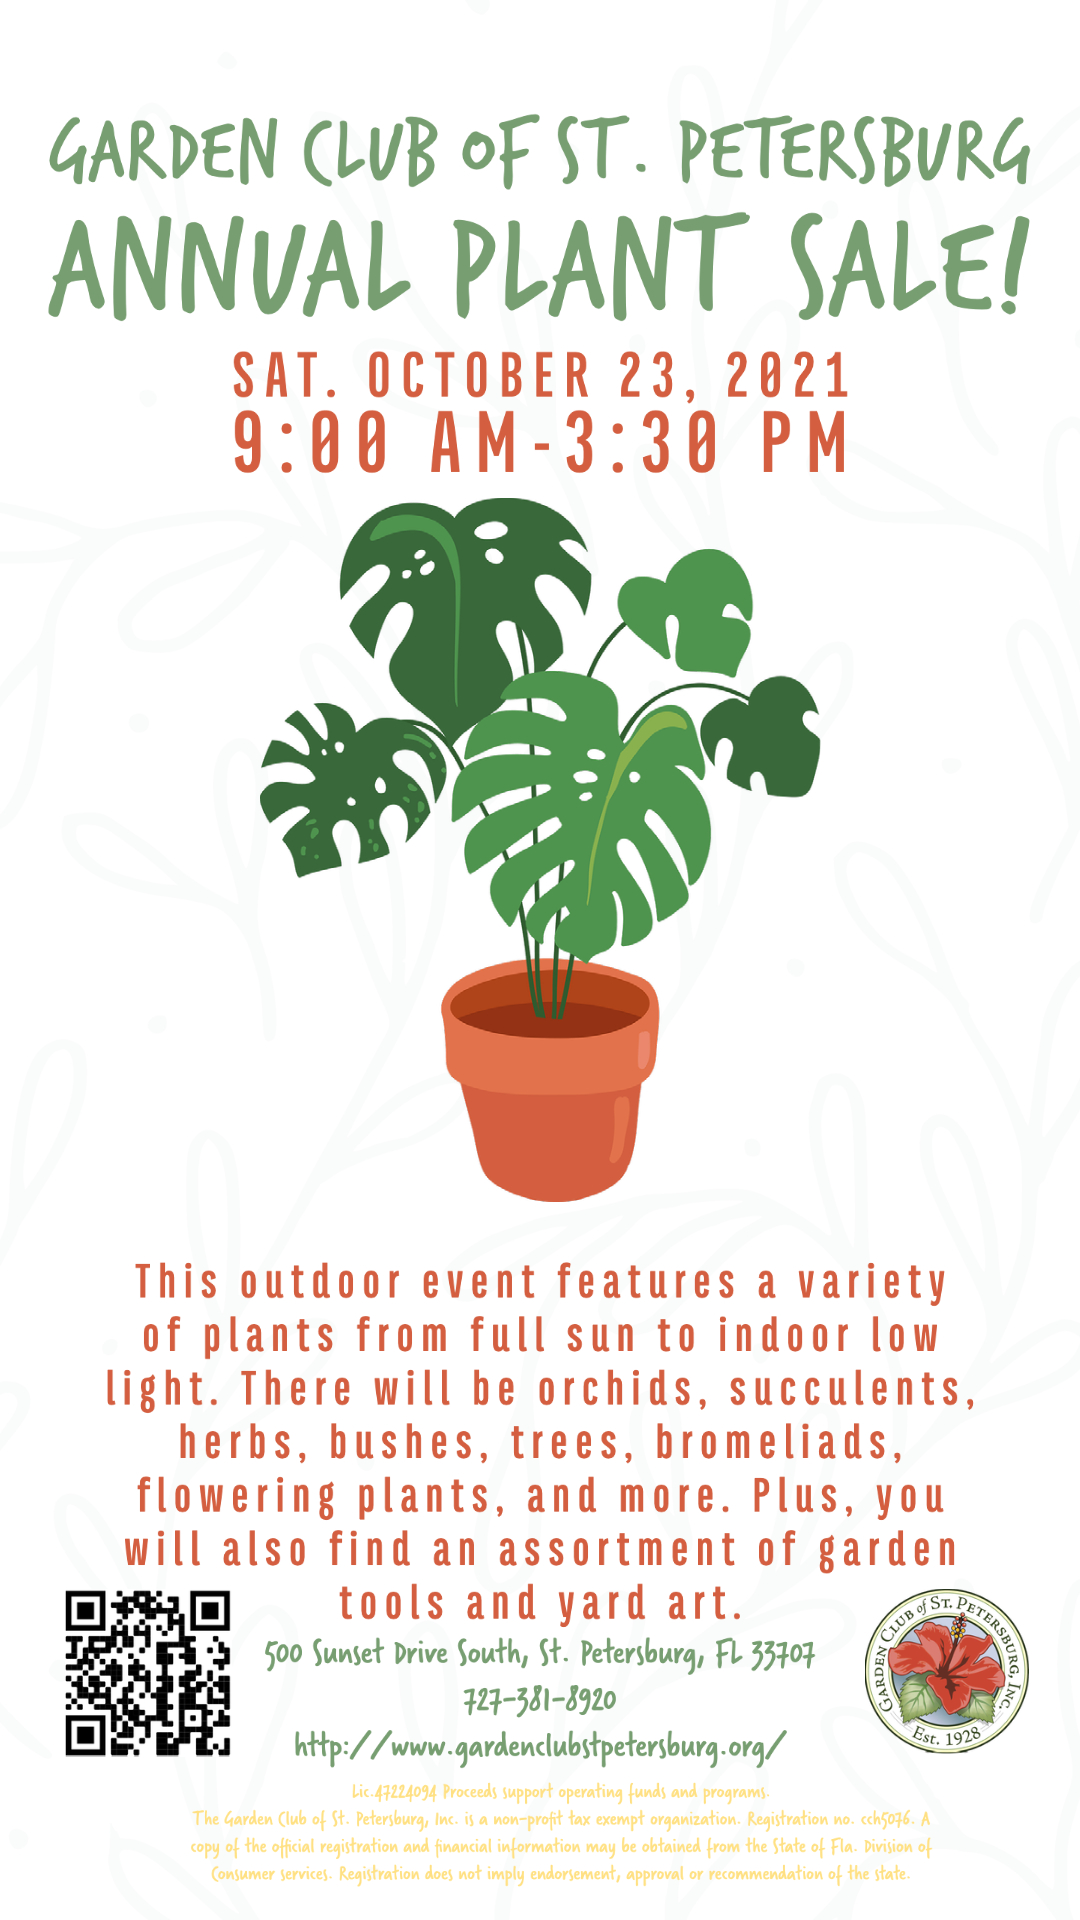 Garden Club of St. Petersburg Annual Plant Sale! Garden Club of St. Petersburg Annual Plant Sale! Sat. October 23, 2021 9:00 AM-3:30 PM This outdoor event features a variety of plants from full sun to indoor low light. There will be orchids, succulents, herbs, bushes, trees, bromeliads, flowering plants, and more. Plus, you will also find an assortment of garden tools and yard art. 500 Sunset Drive South, St. Petersburg, FL 33707 727-381-8920 http://www.gardenclubstpetersburg.org/ Lic.47224094 Proceeds support operating funds and programs. The Garden Club of St. Petersburg, Inc. is a non-profit tax exempt organization. Registration no. cch5076. A copy of the official registration and financial information may be obtained from the State of Fla. Division of Consumer services. Registration does not imply endorsement, approval or recommendation of the state.